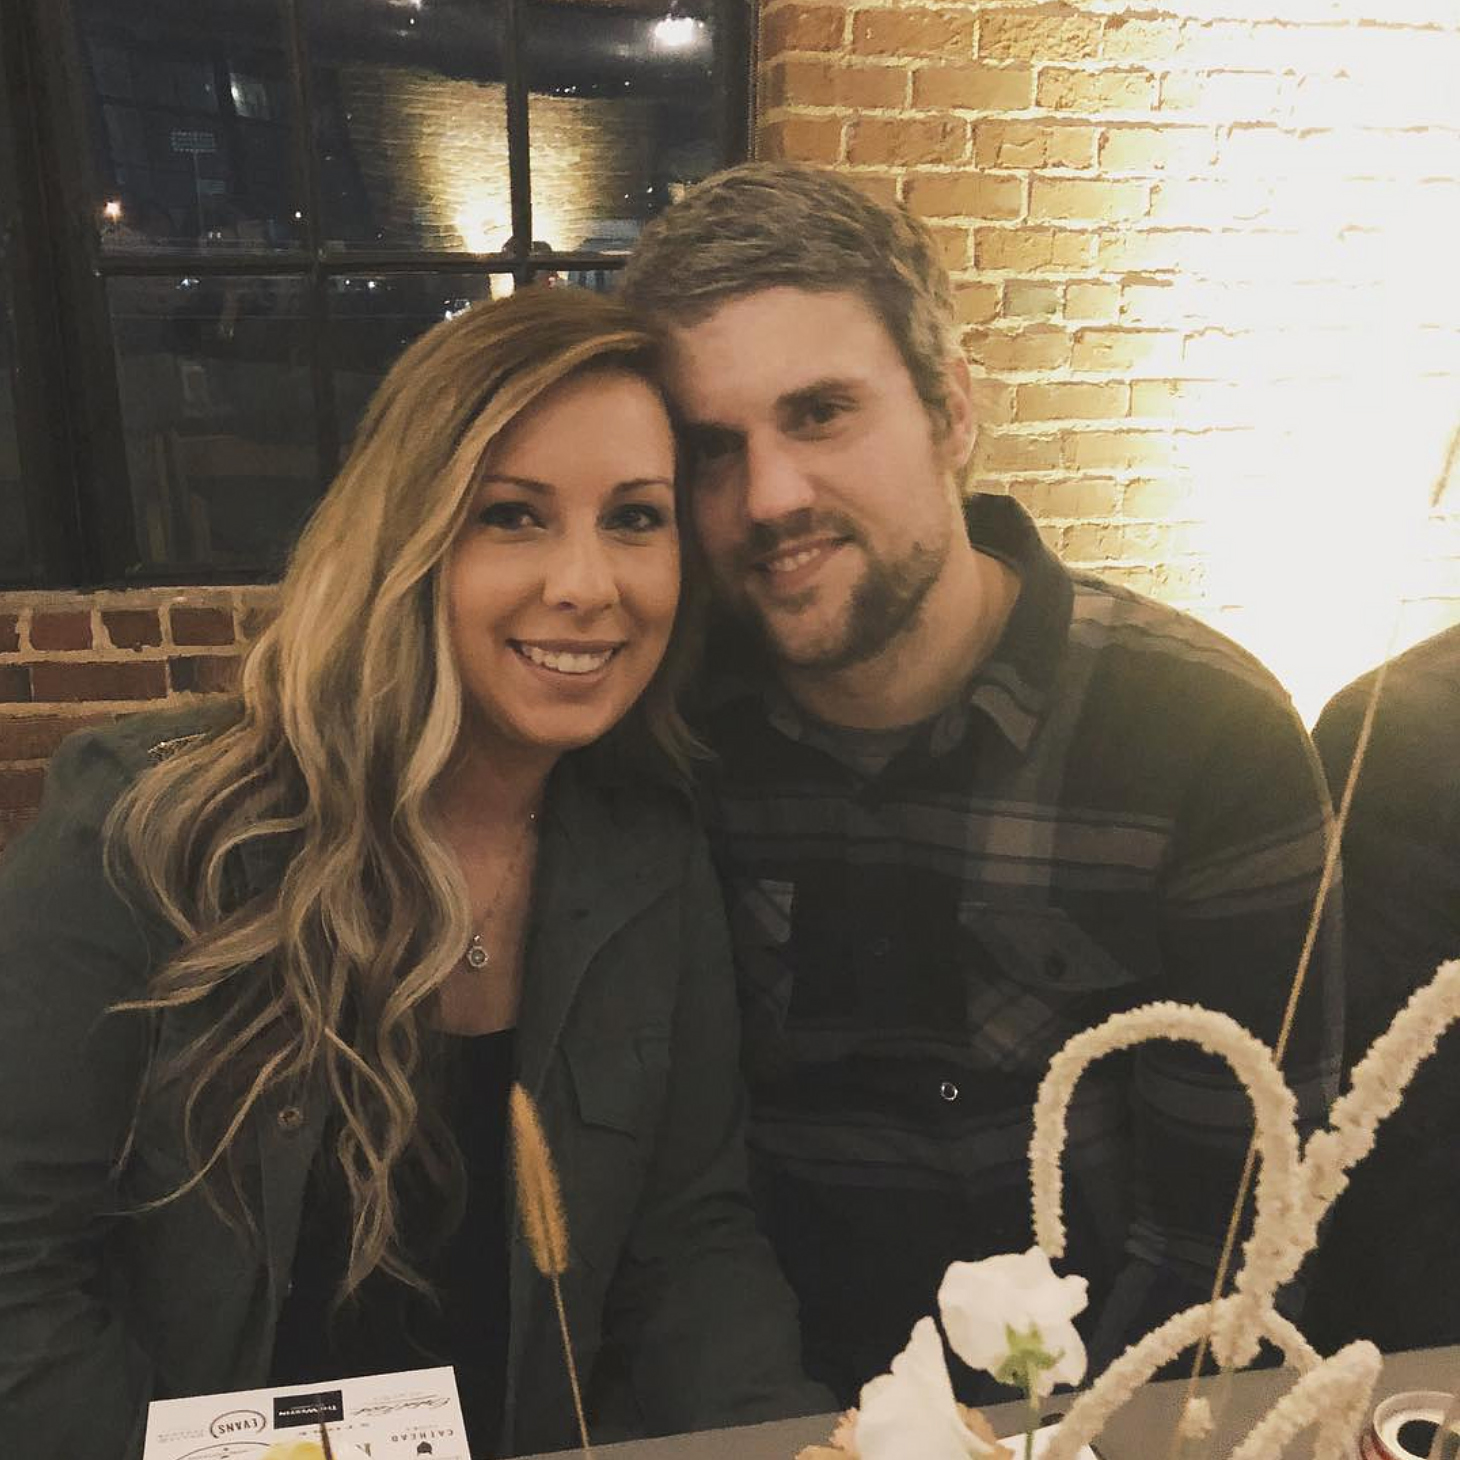 Ryan Edwards Wife Mackenzie Standifer Denial About His Drug Addiction